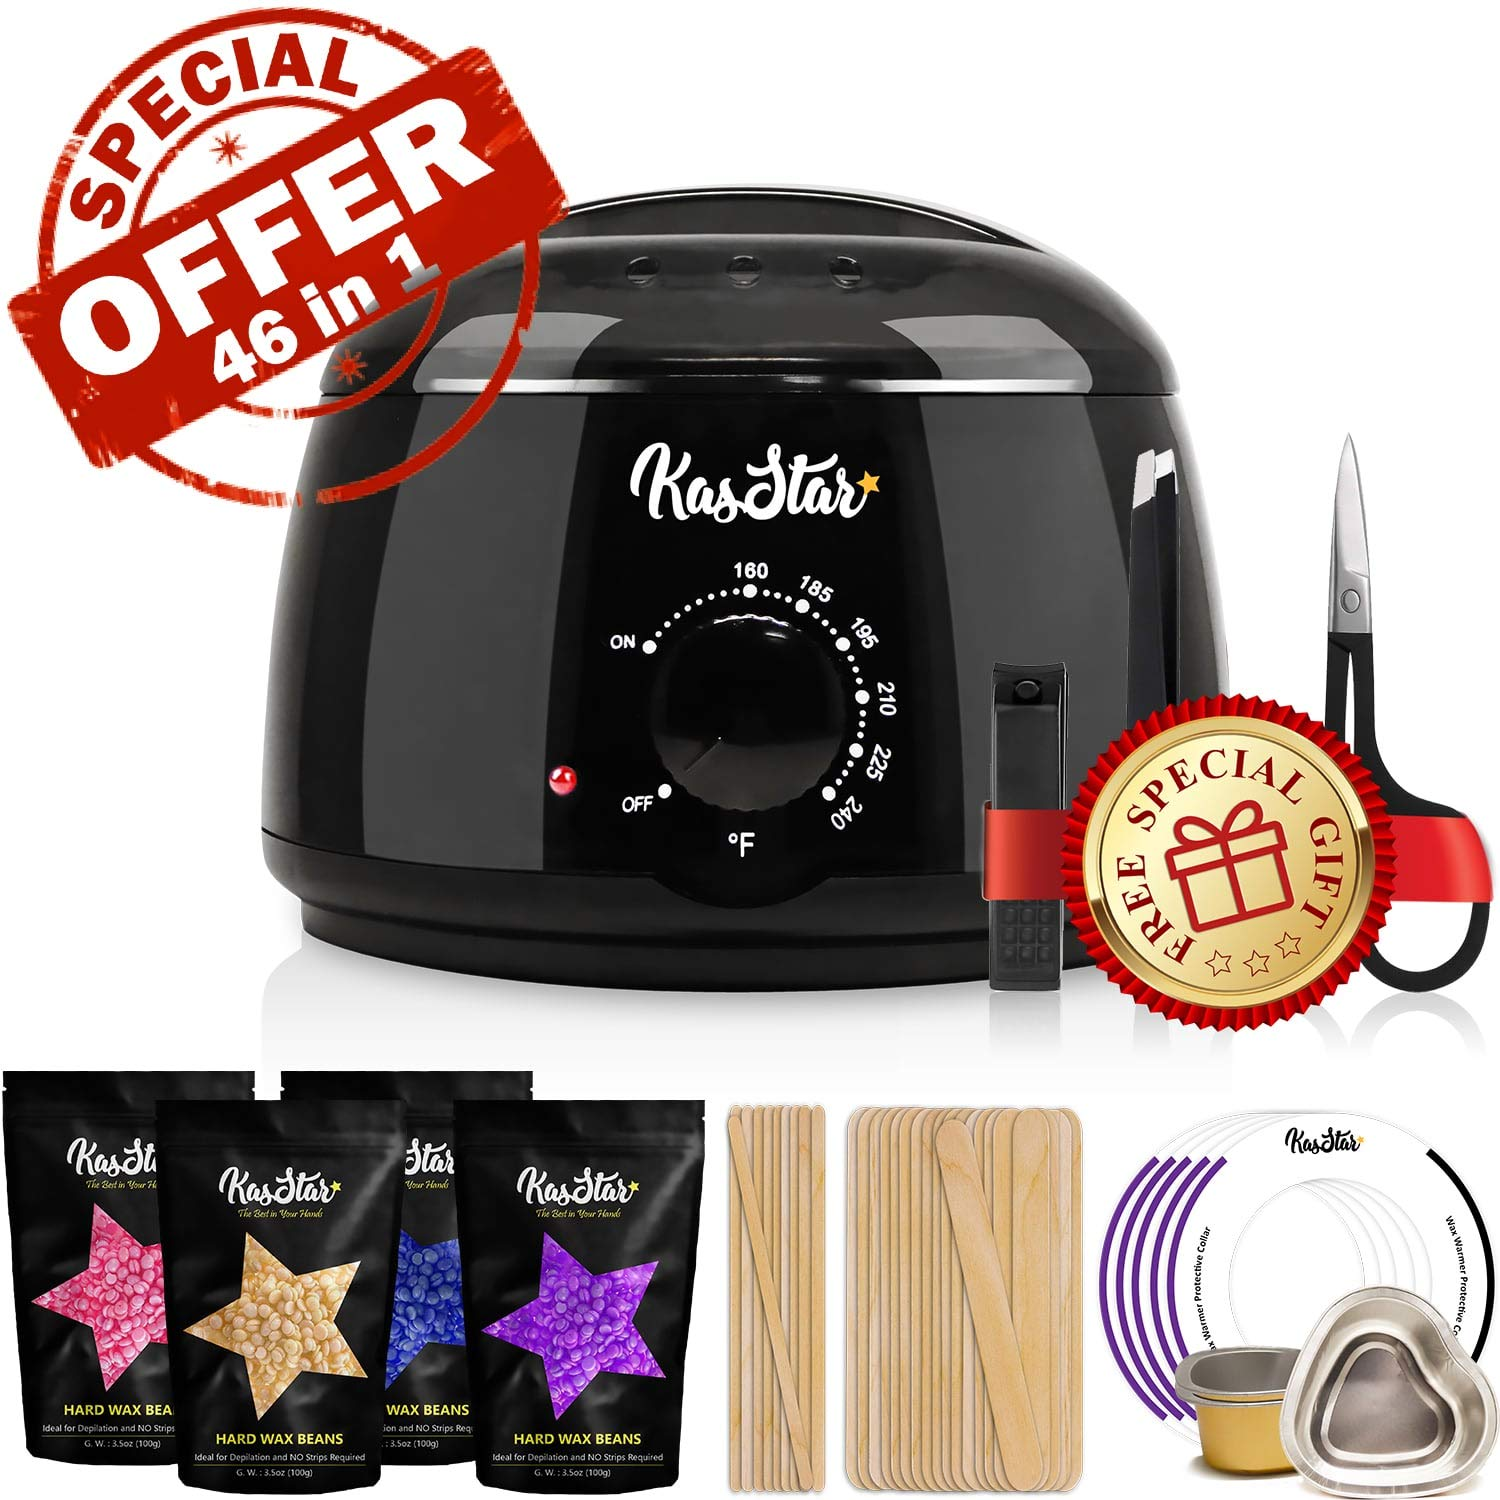 【46 in 1】 Wax Warmer - KasStar Waxing Kit Hair Removal for Rapid Waxing of All Body with 4 Scents Hard Wax Beans 30 Wax Applicator Spatula Sticks 5 Protective Collars 3 Small Bowls and SPECIAL GIFT